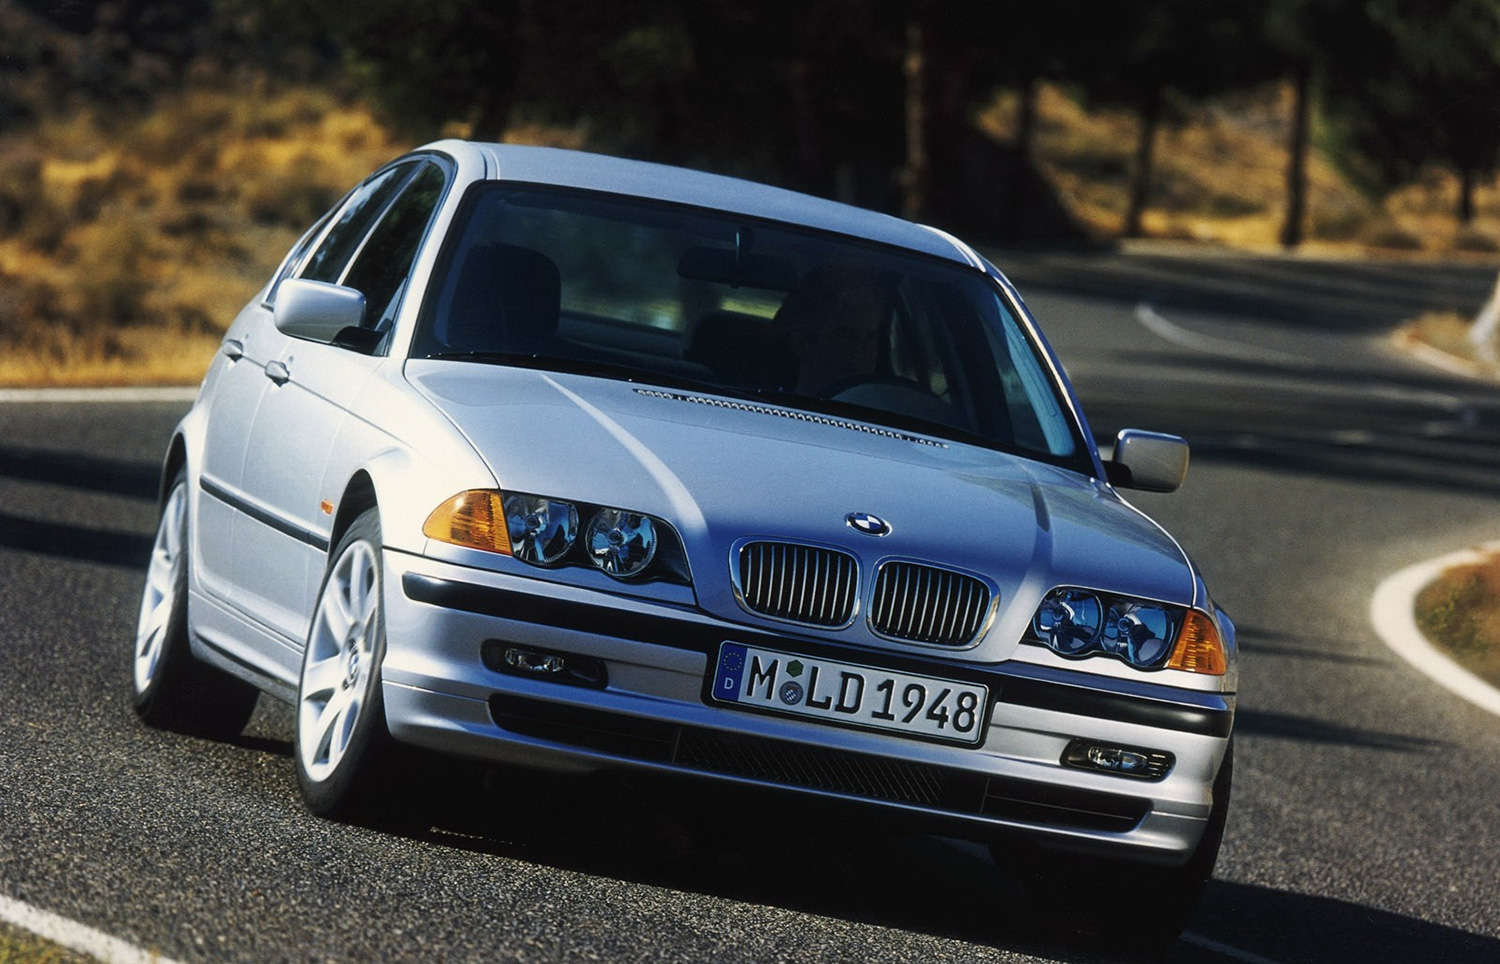 BMW 3 series 330xd 2001 photo - 2